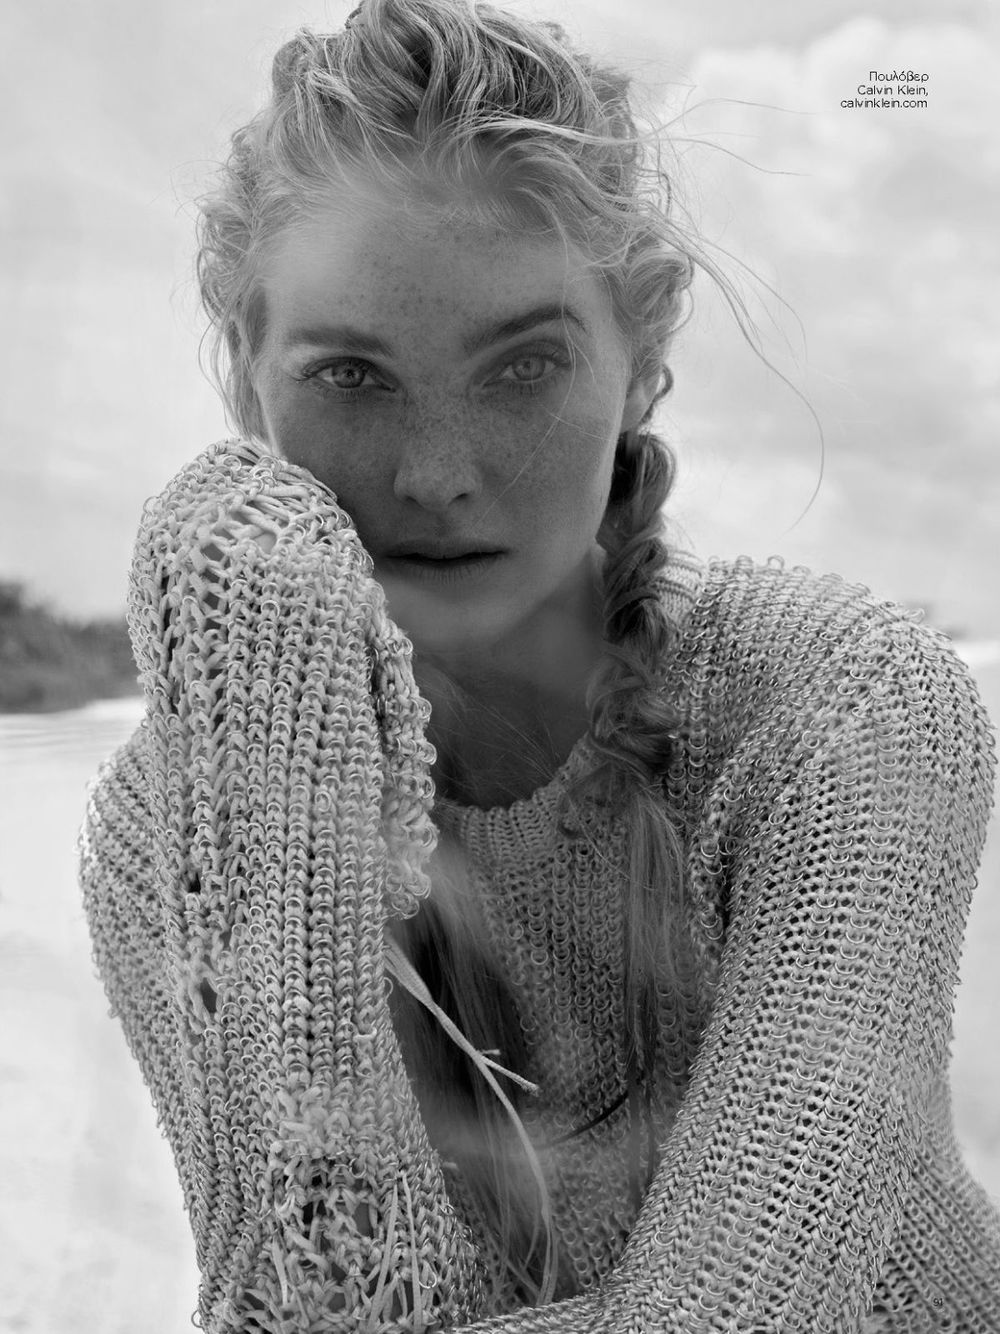 ac032-elsa-hosk-in-harper-s-bazaar-magazine-greece-august-2016-issue_1.jpg